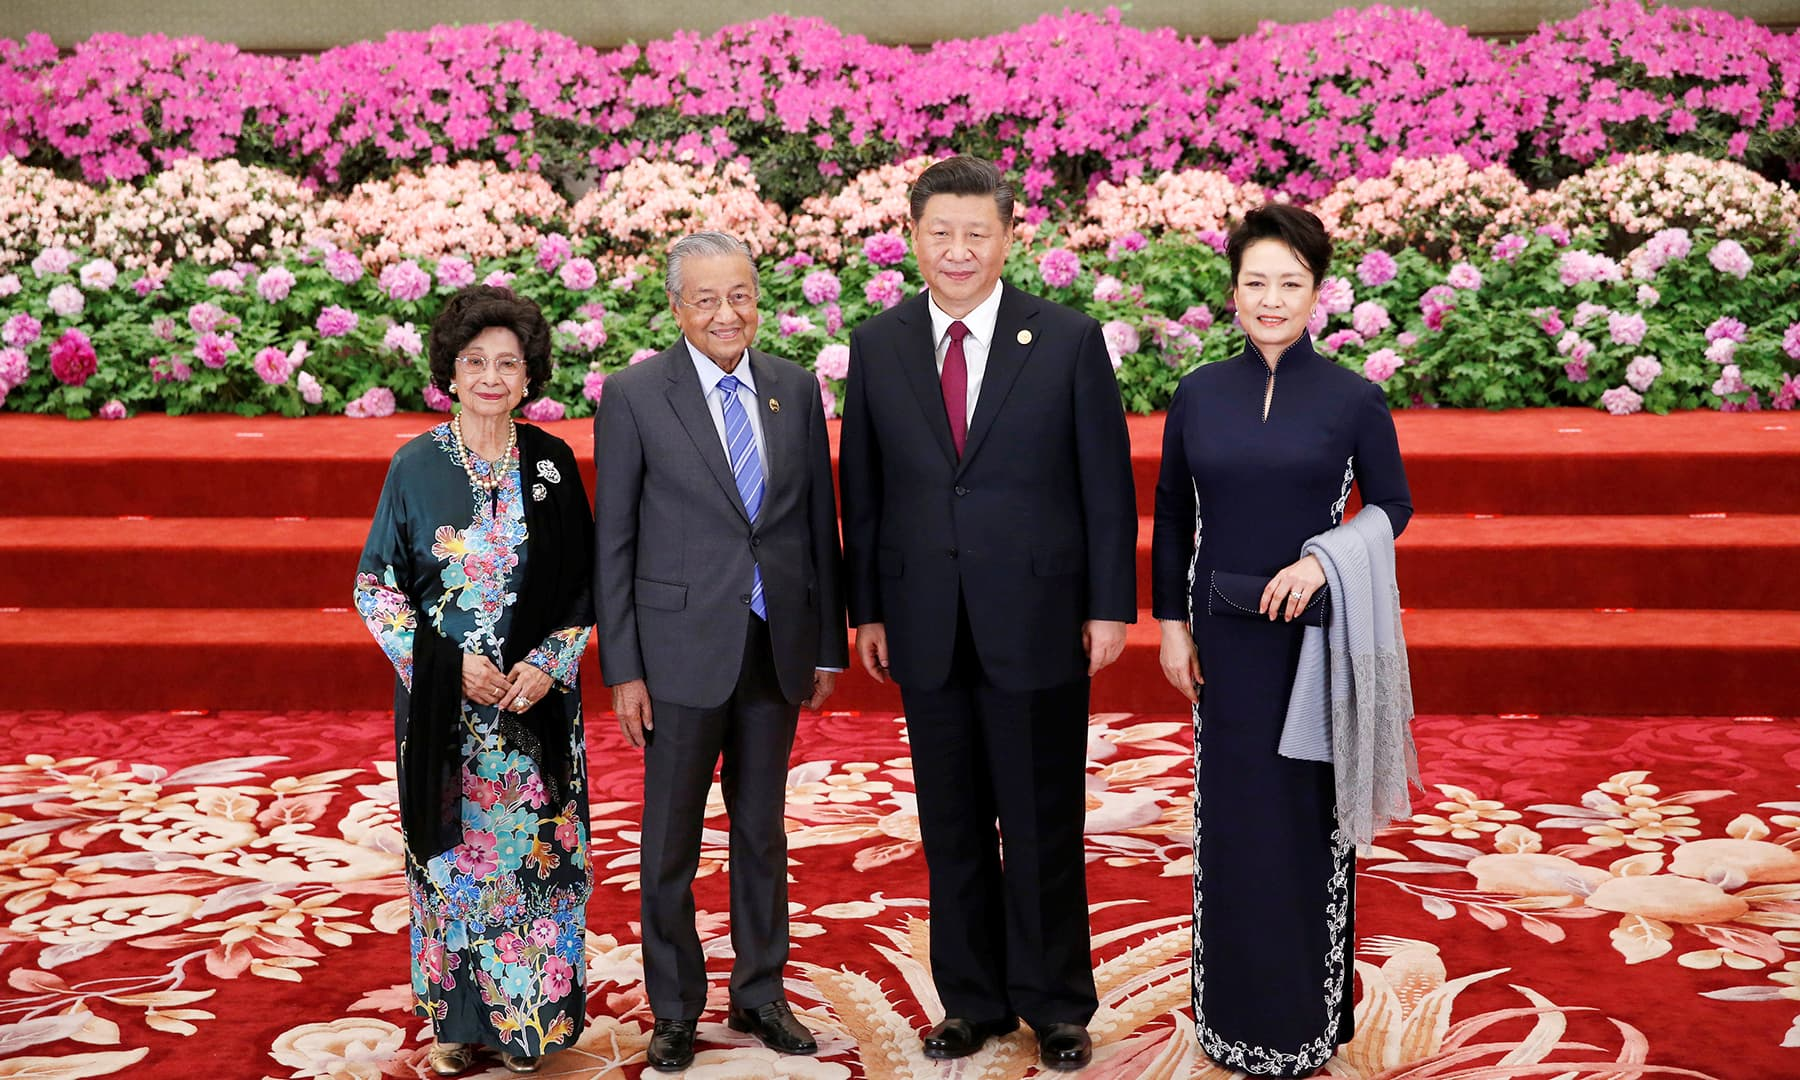 Malaysian Prime Minister Mahathir Mohamad (2nd L) and his wife Siti Hasmah arrive to attend the welcome banquet. — Reuters